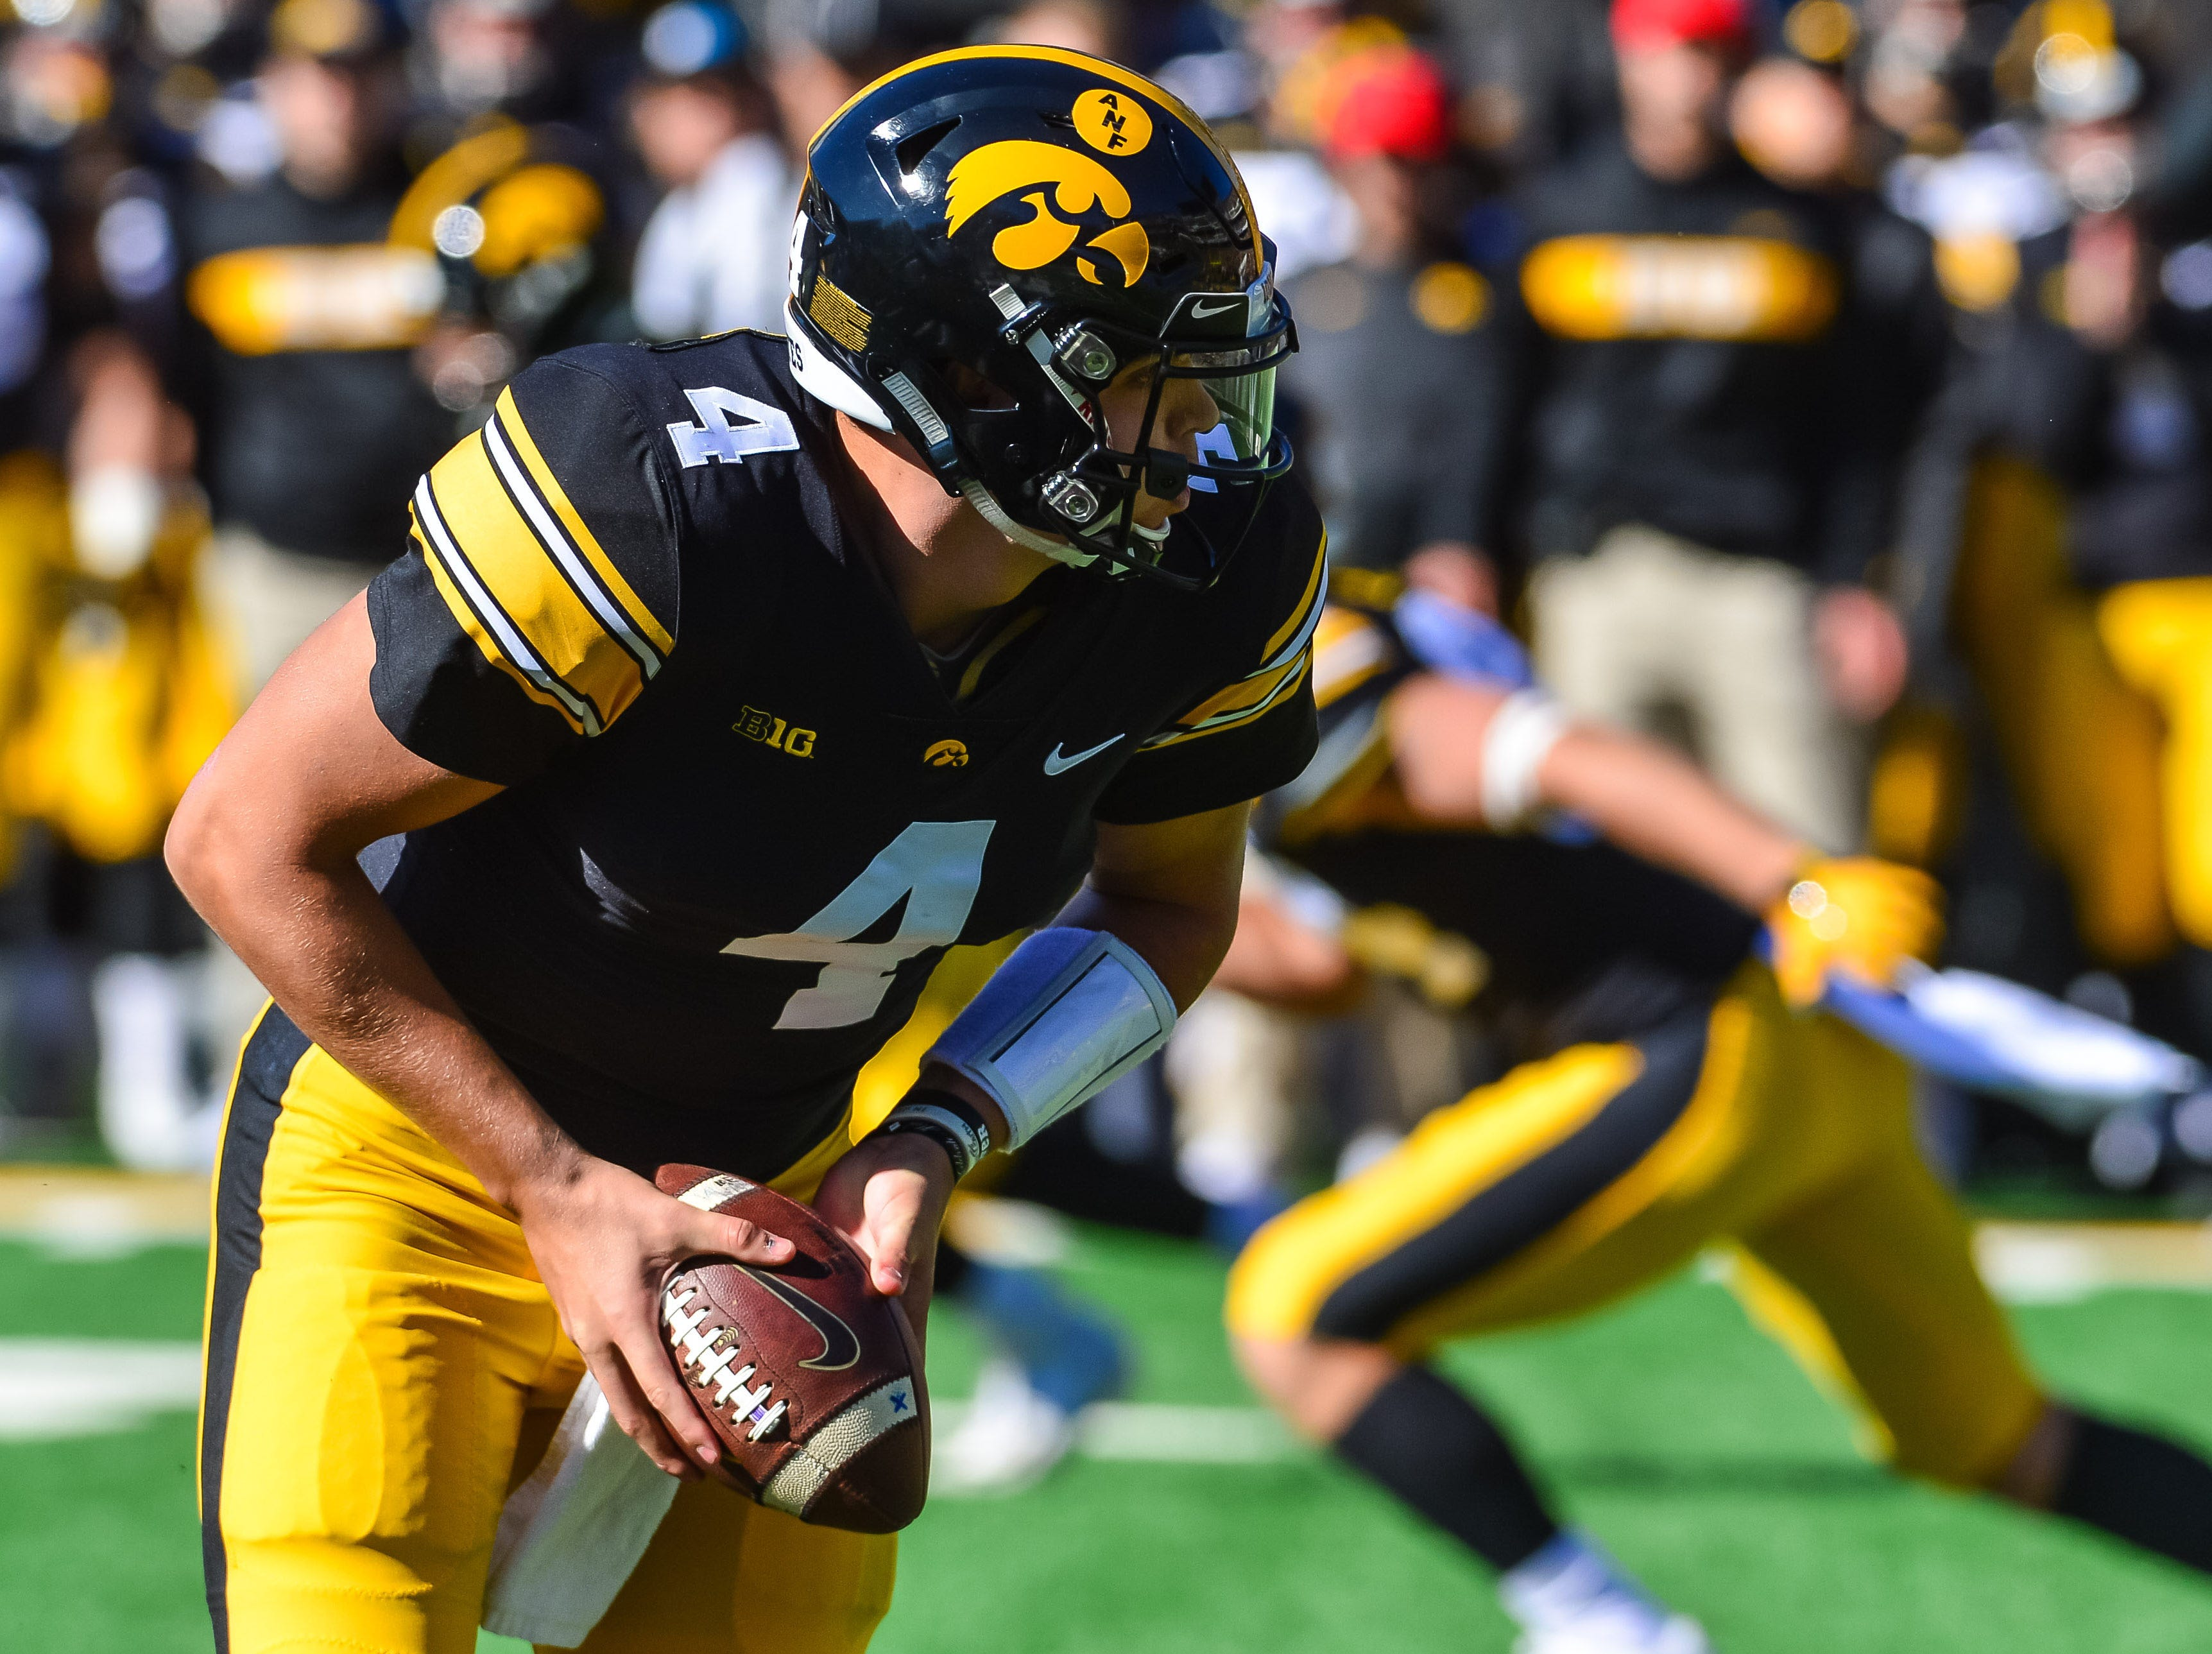 Iowa Hawkeyes quarterback Nate Stanley looks to make a handoff during the first quarter against the Maryland Terrapins on Oct. 20, 2018 at Kinnick Stadium.